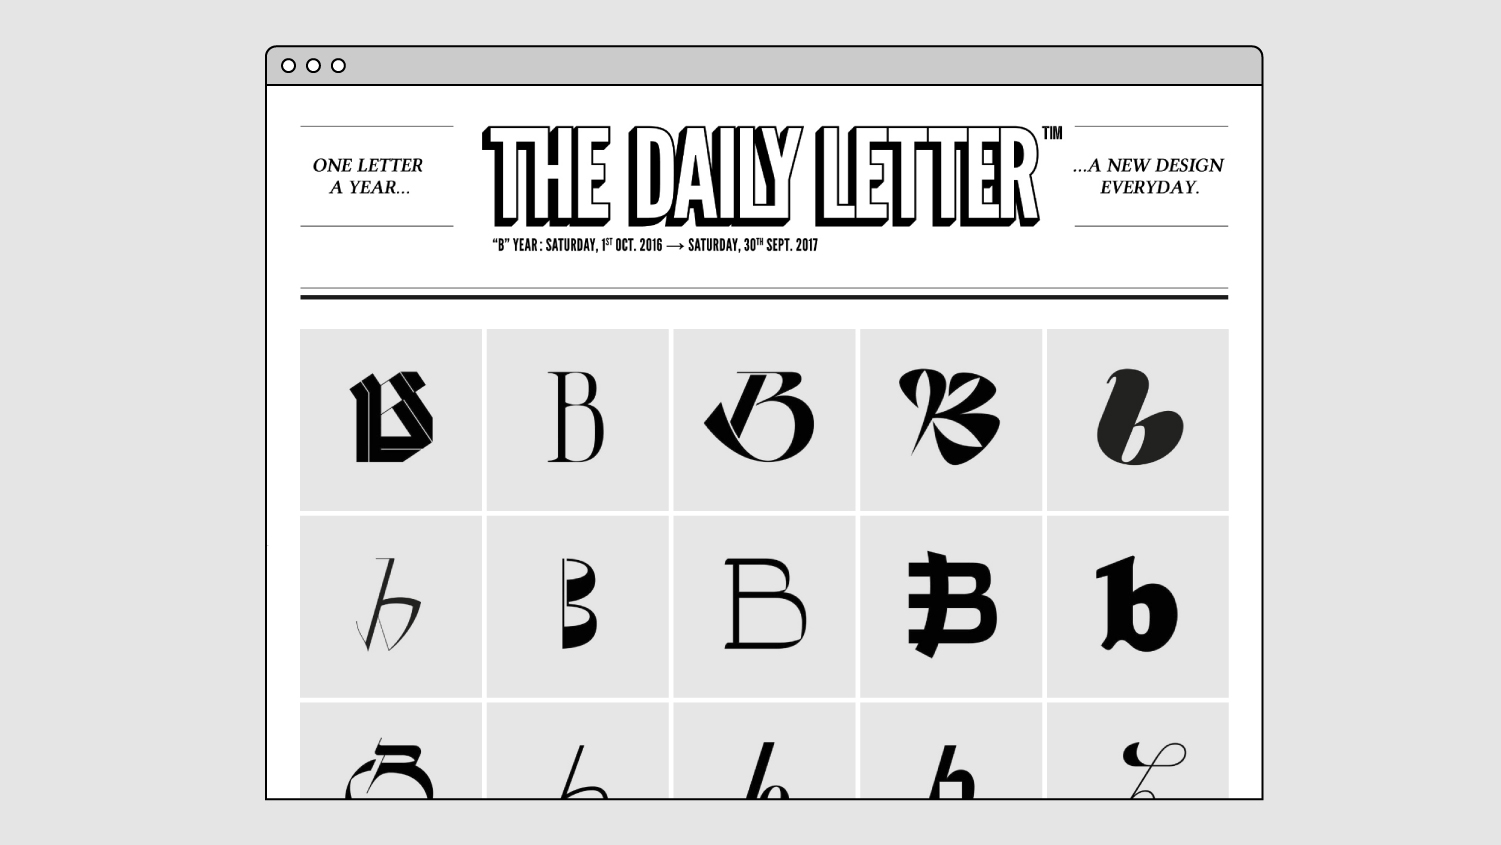 THE_DAILY_LETTER_SITE-25